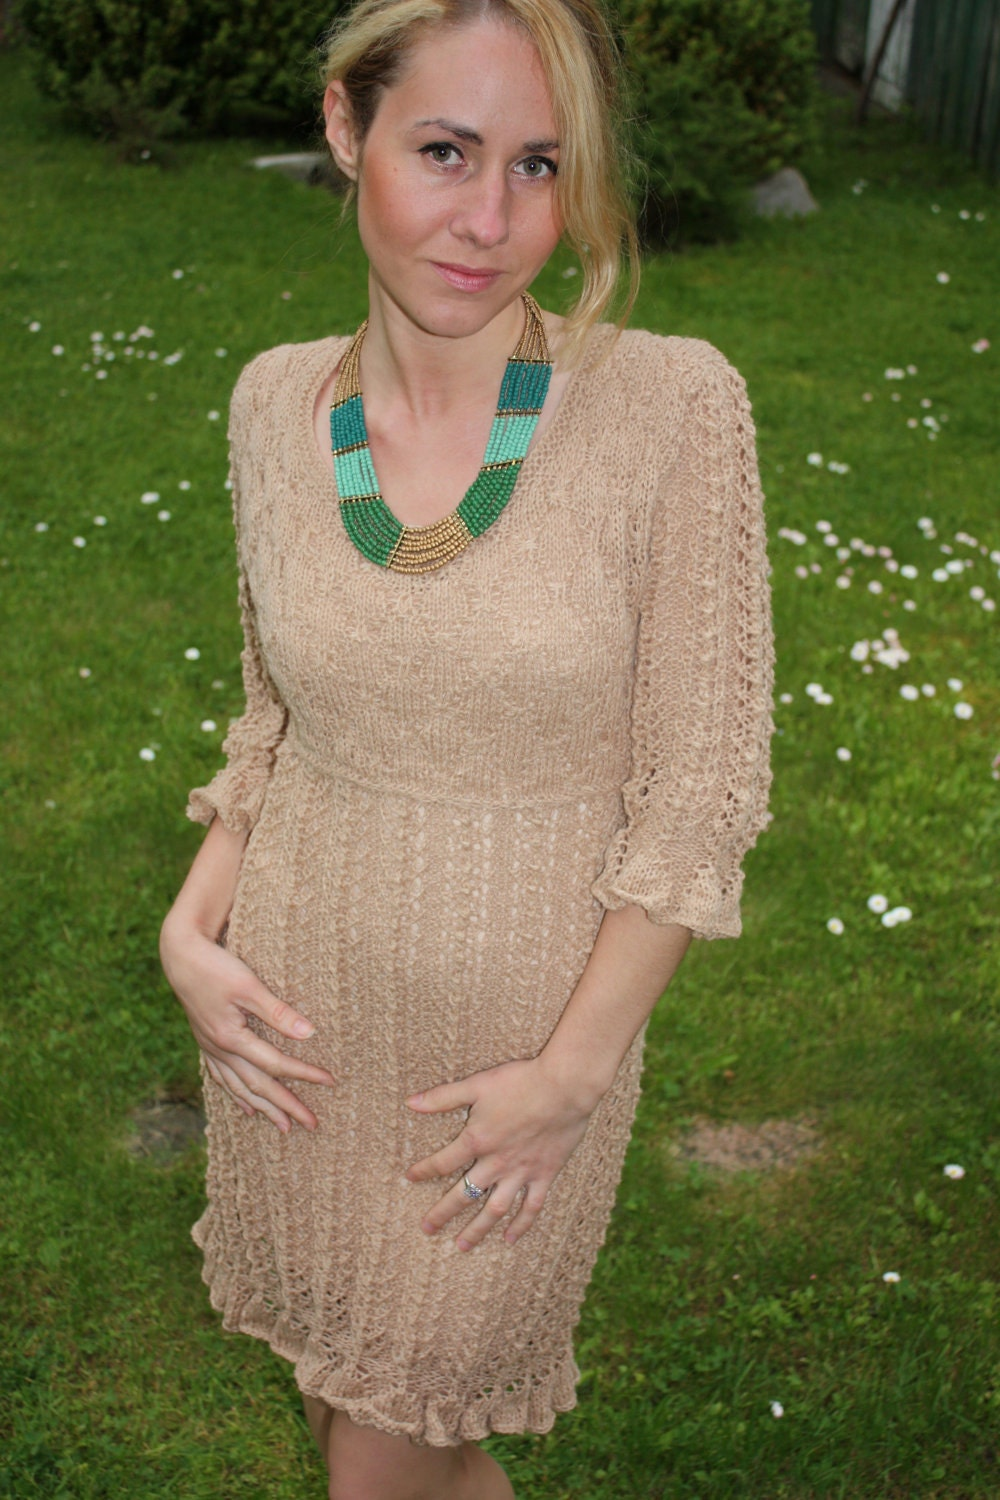 Hand Knitted Dress Patterns : Items similar to Hand Knitted Lace Dress-Hand knit Dress on Etsy